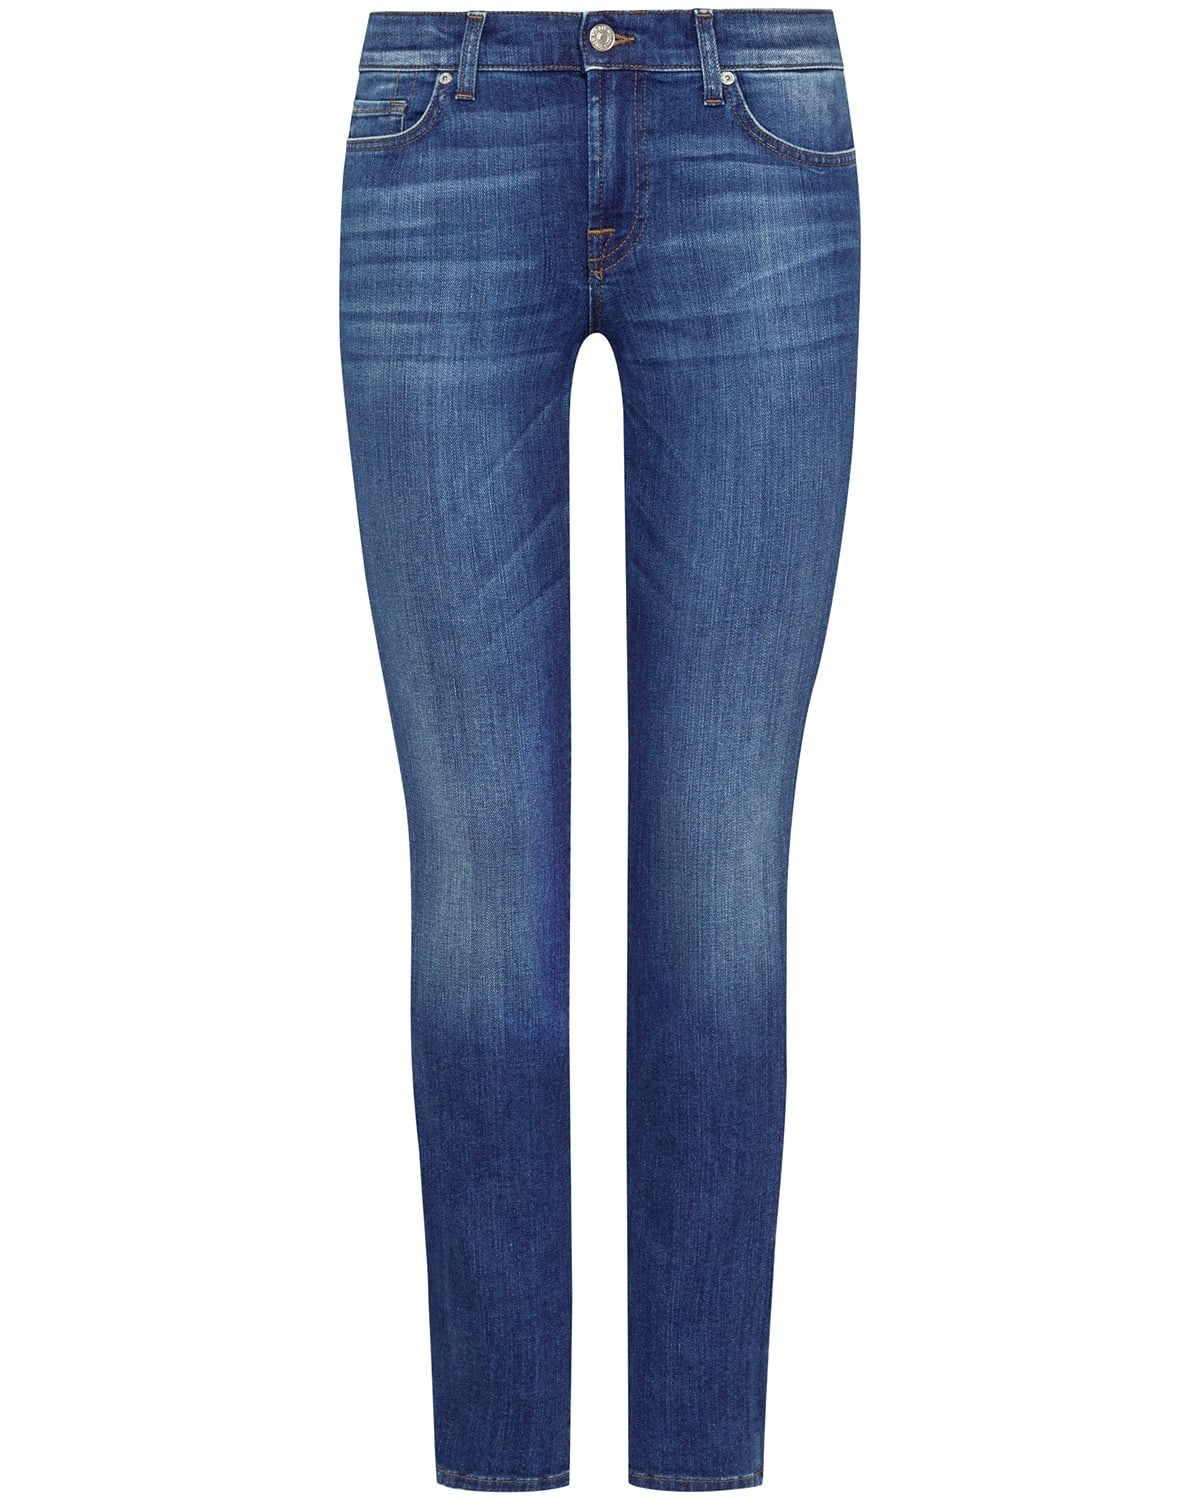 7 For All Mankind, Blue-Jeans, Pyper Jeans, Lodenfrey, Munich